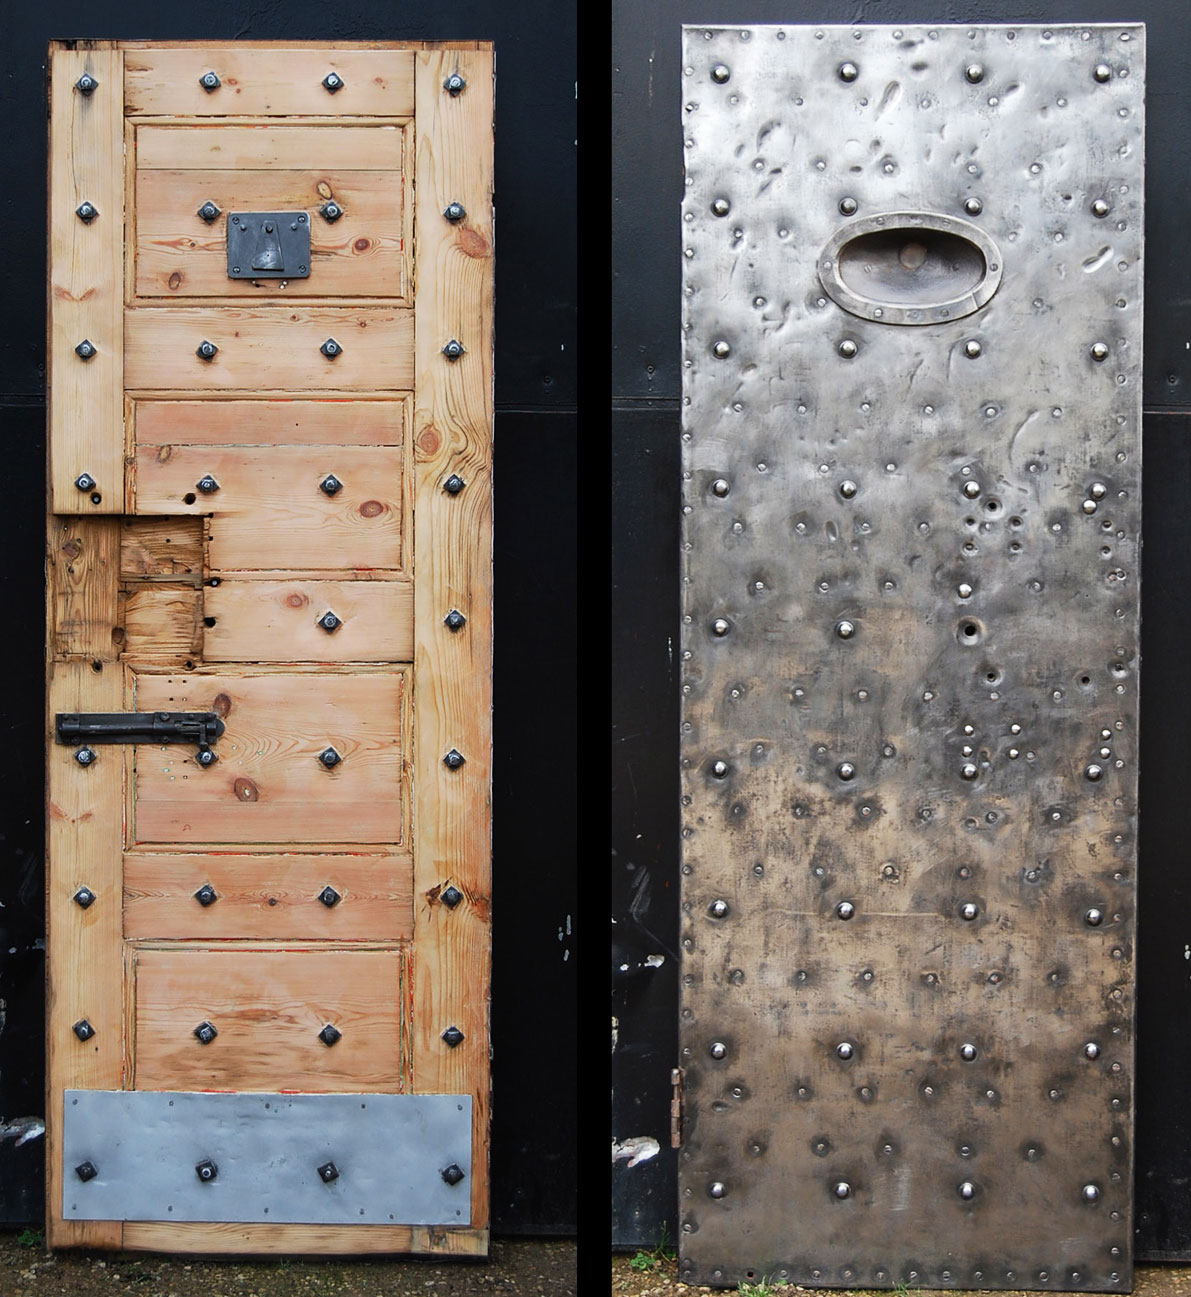 If your project is appropriate choose reclaimed doors from salvage yards such as Lassco